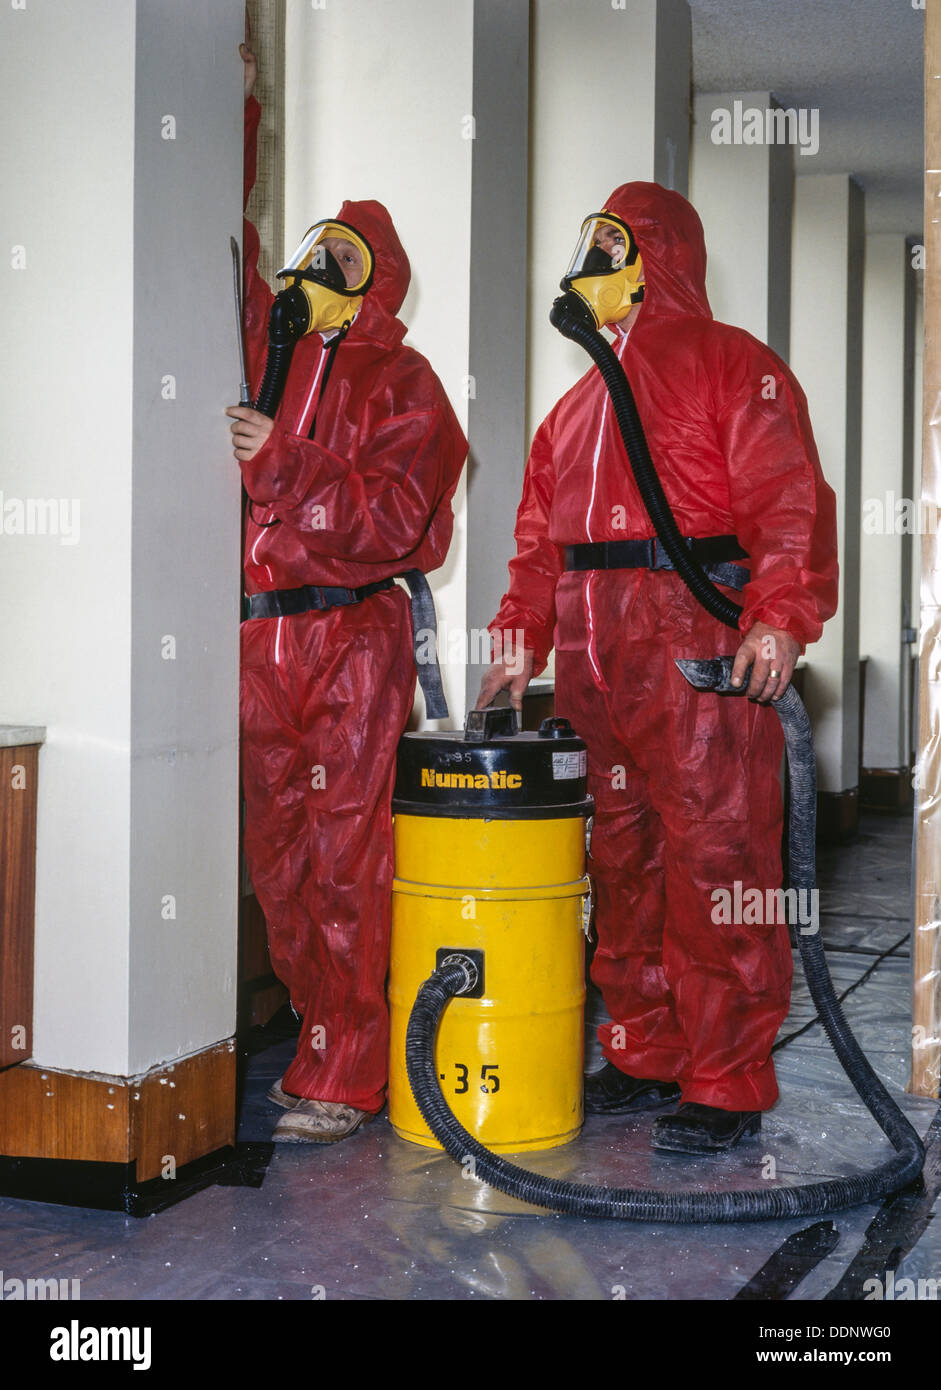 Asbestos removal workers, UK - Stock Image